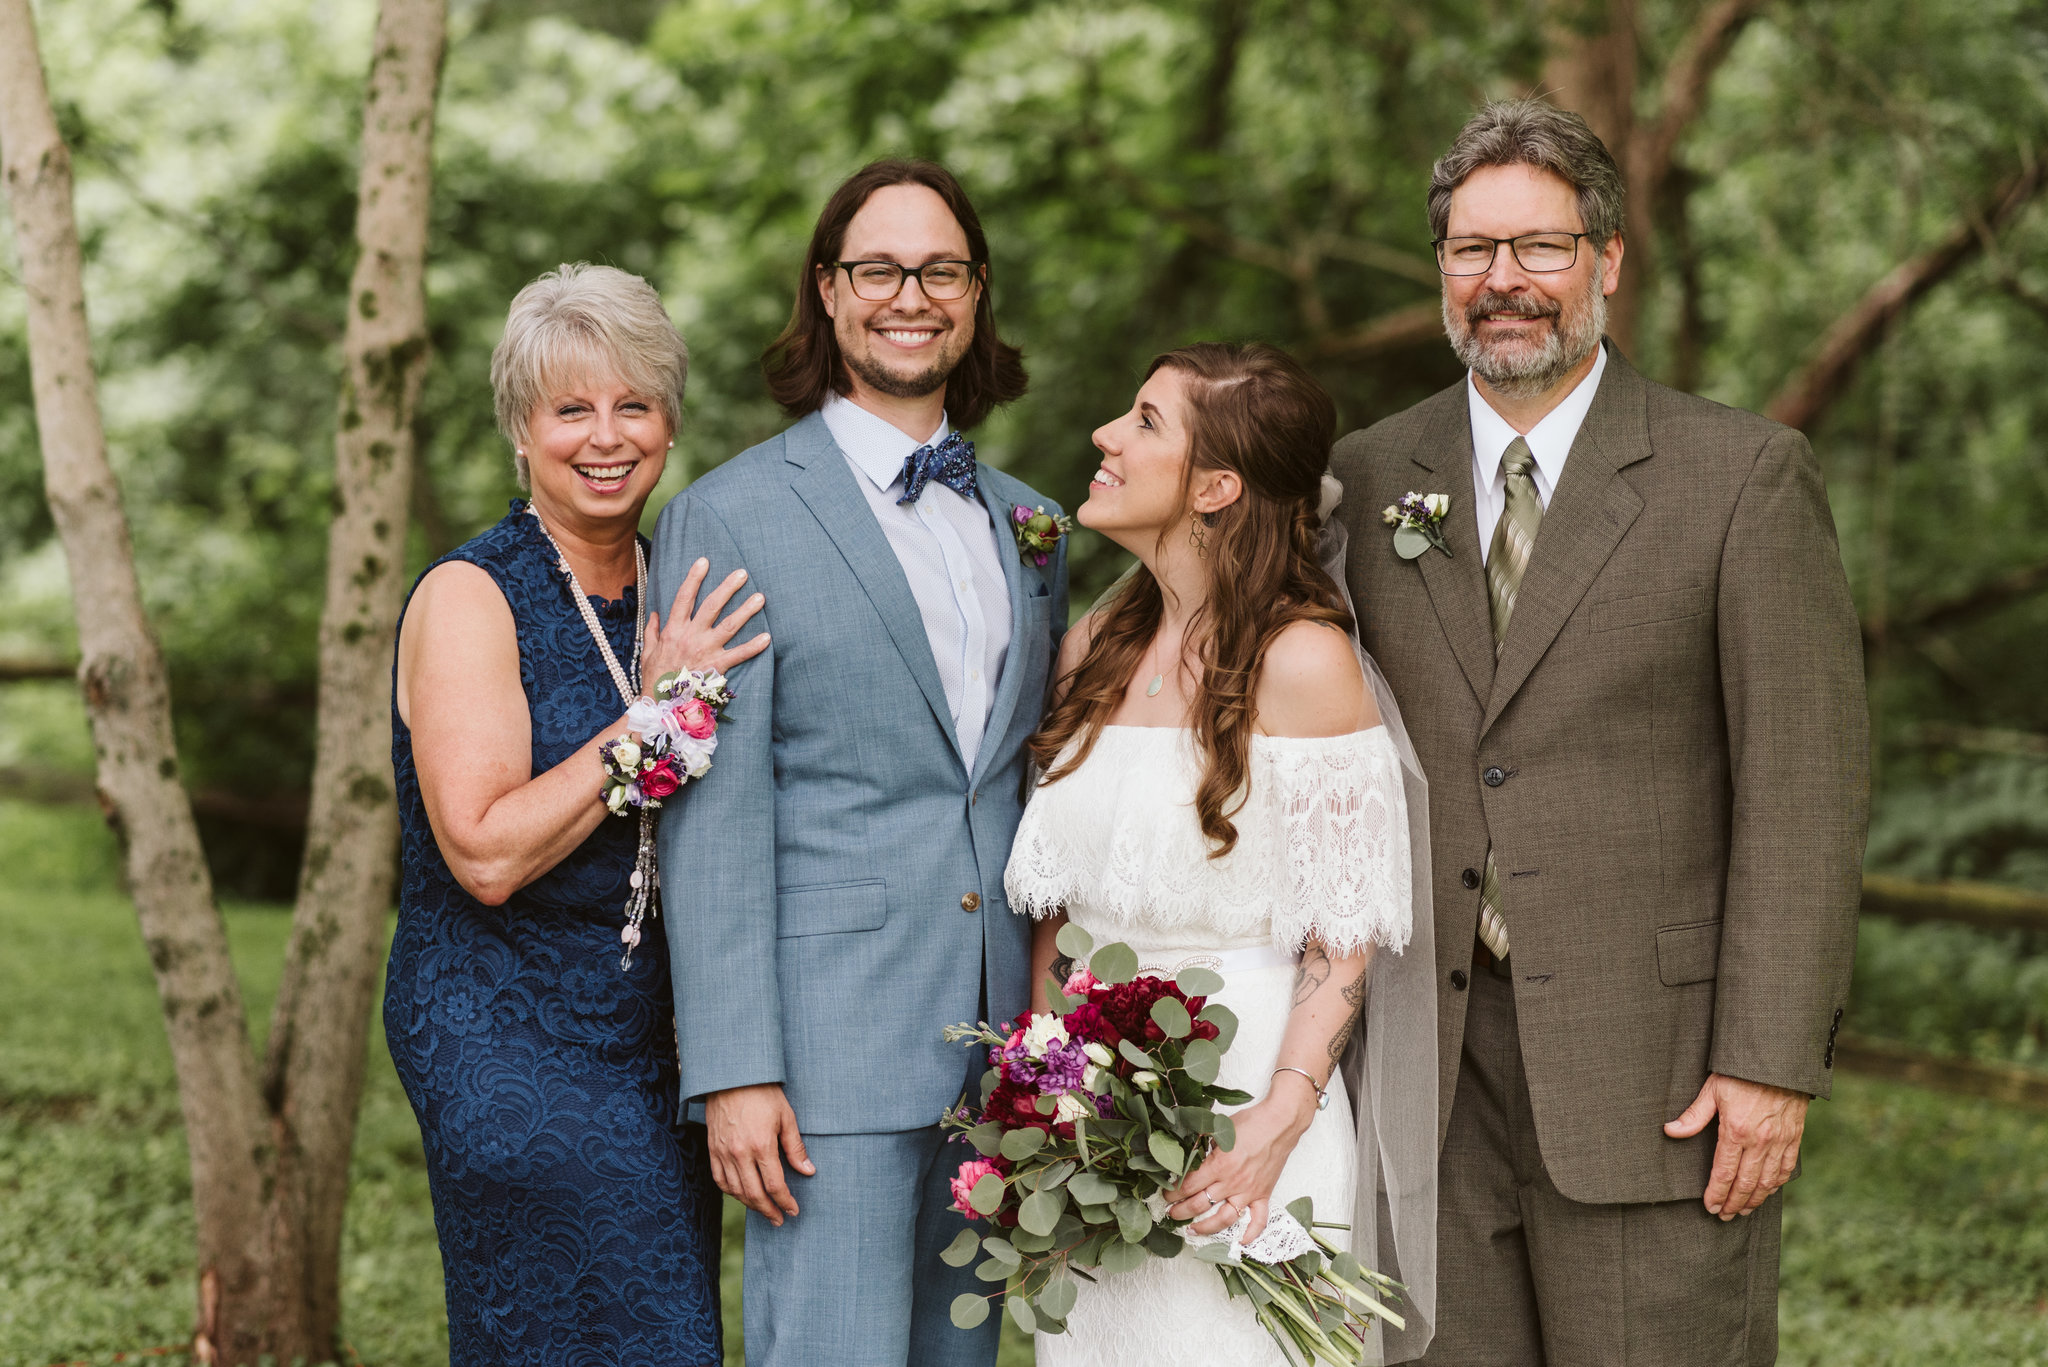 Annapolis, Quaker Wedding, Maryland Wedding Photographer, Intimate, Small Wedding, Vintage, DIY, Bride and Groom with Parents, Portrait Photo